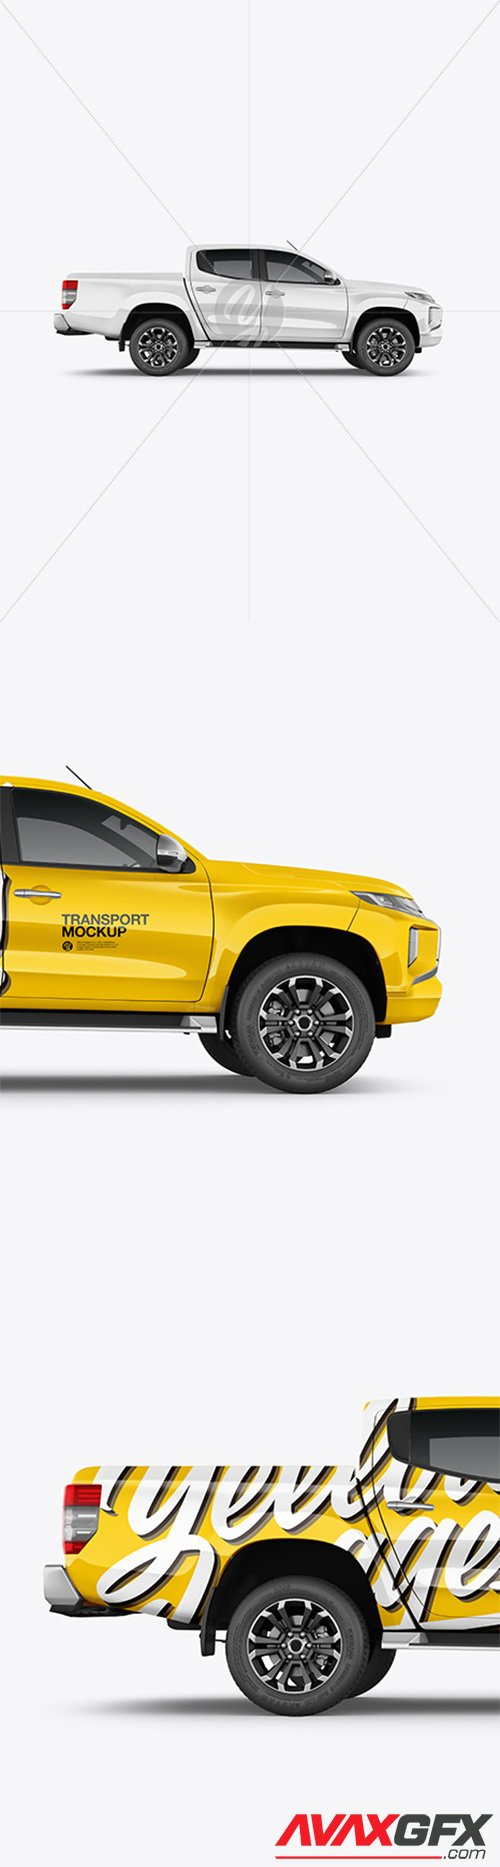 Pickup Truck Mockup - Side View 65684